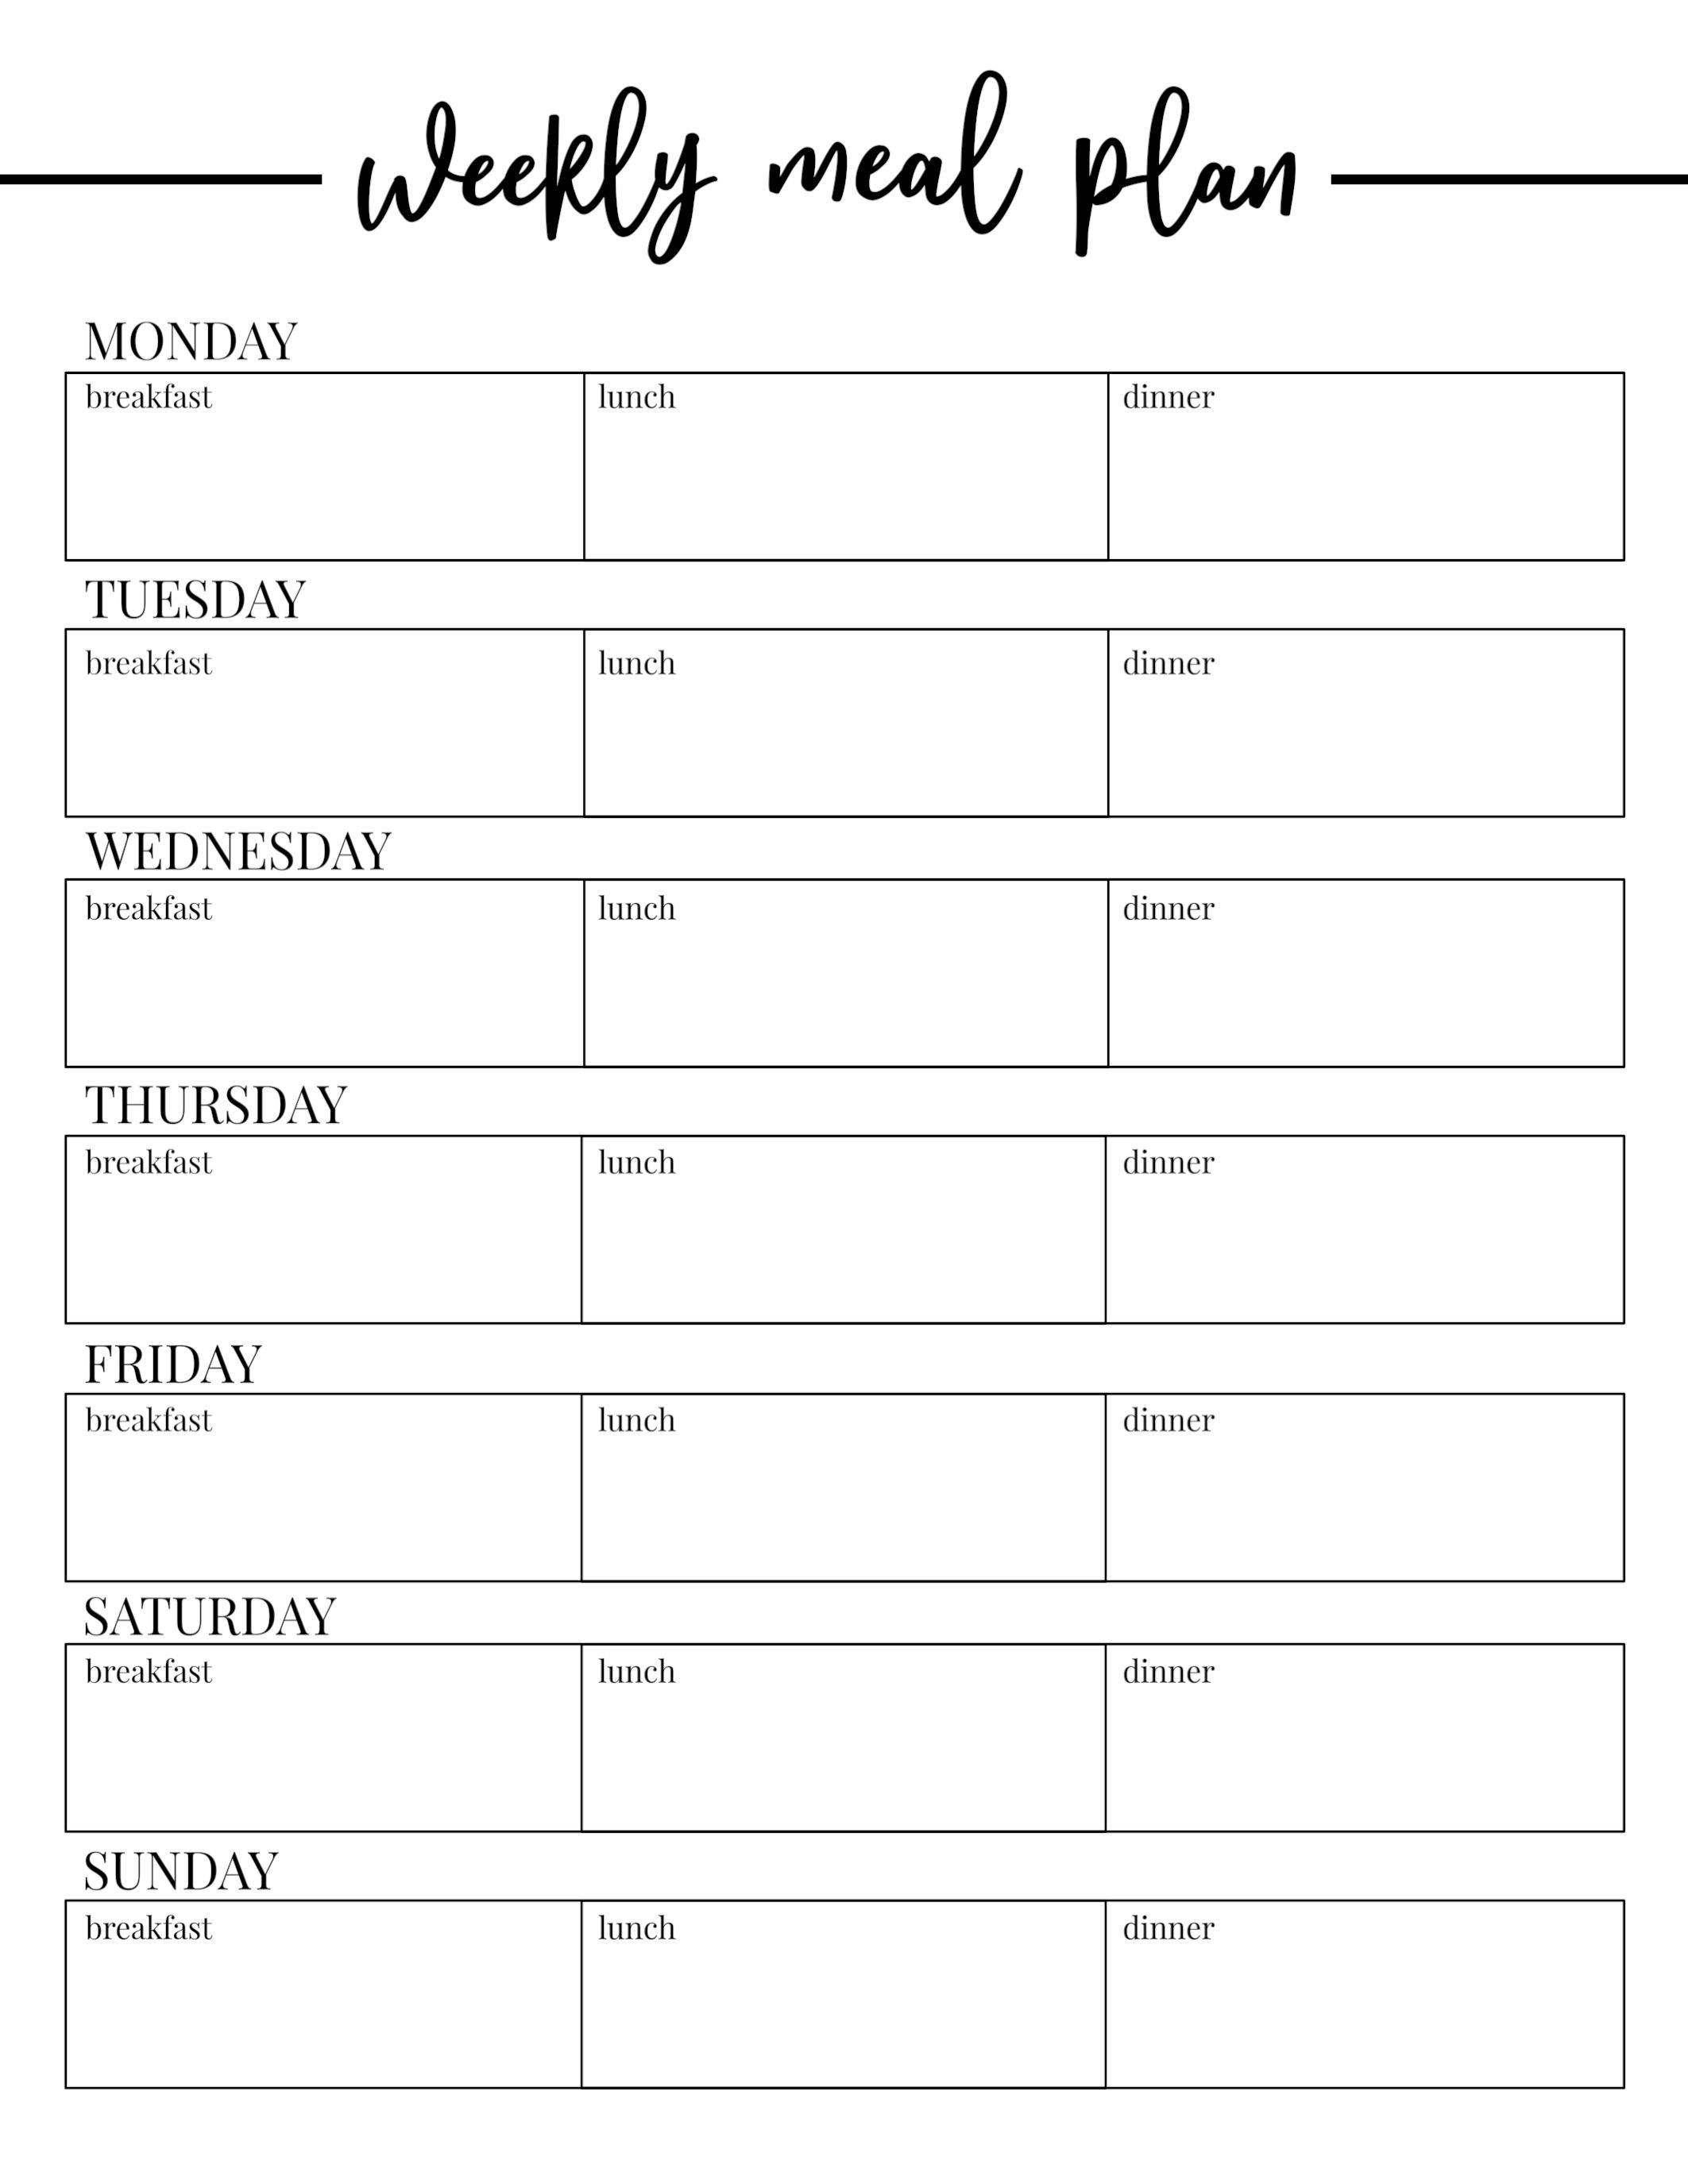 003 Daily Meal Plan Template Weekly Phenomenal Ideas